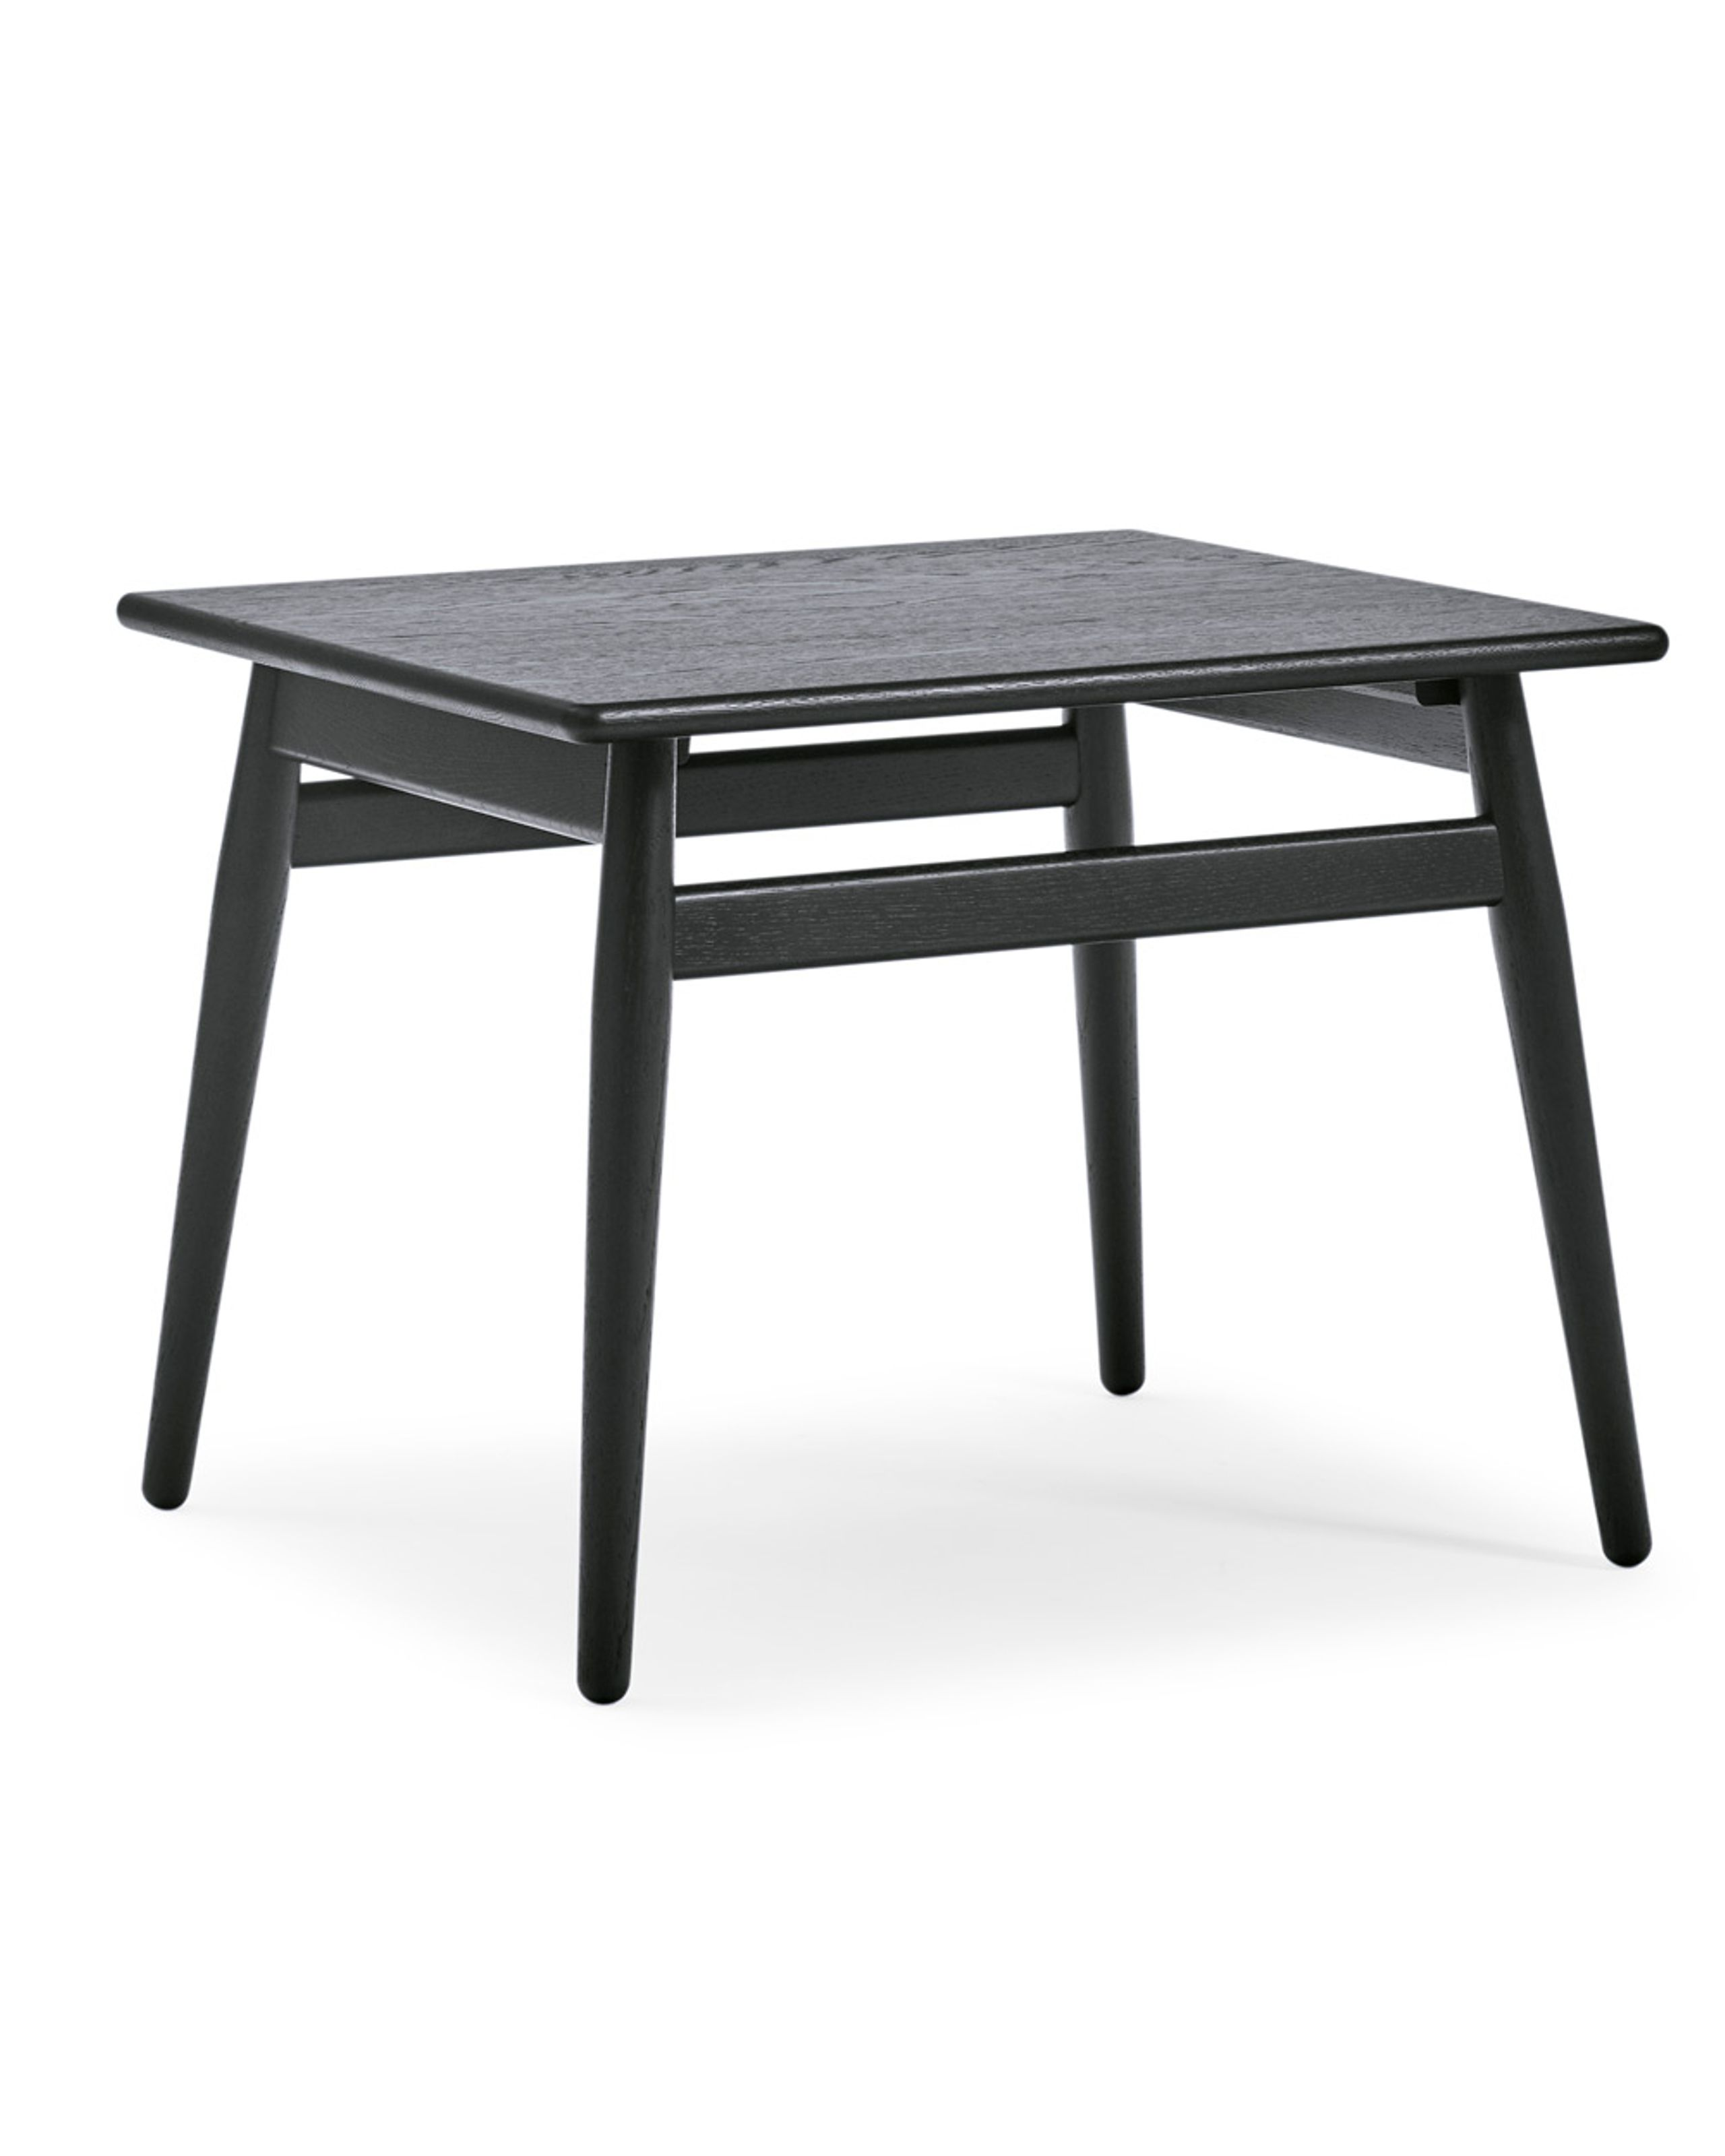 Couchtisch Little & Nice Nd55 Folding Table By Nana Ditzel And Jørgen Ditzel Couchtisch Getama